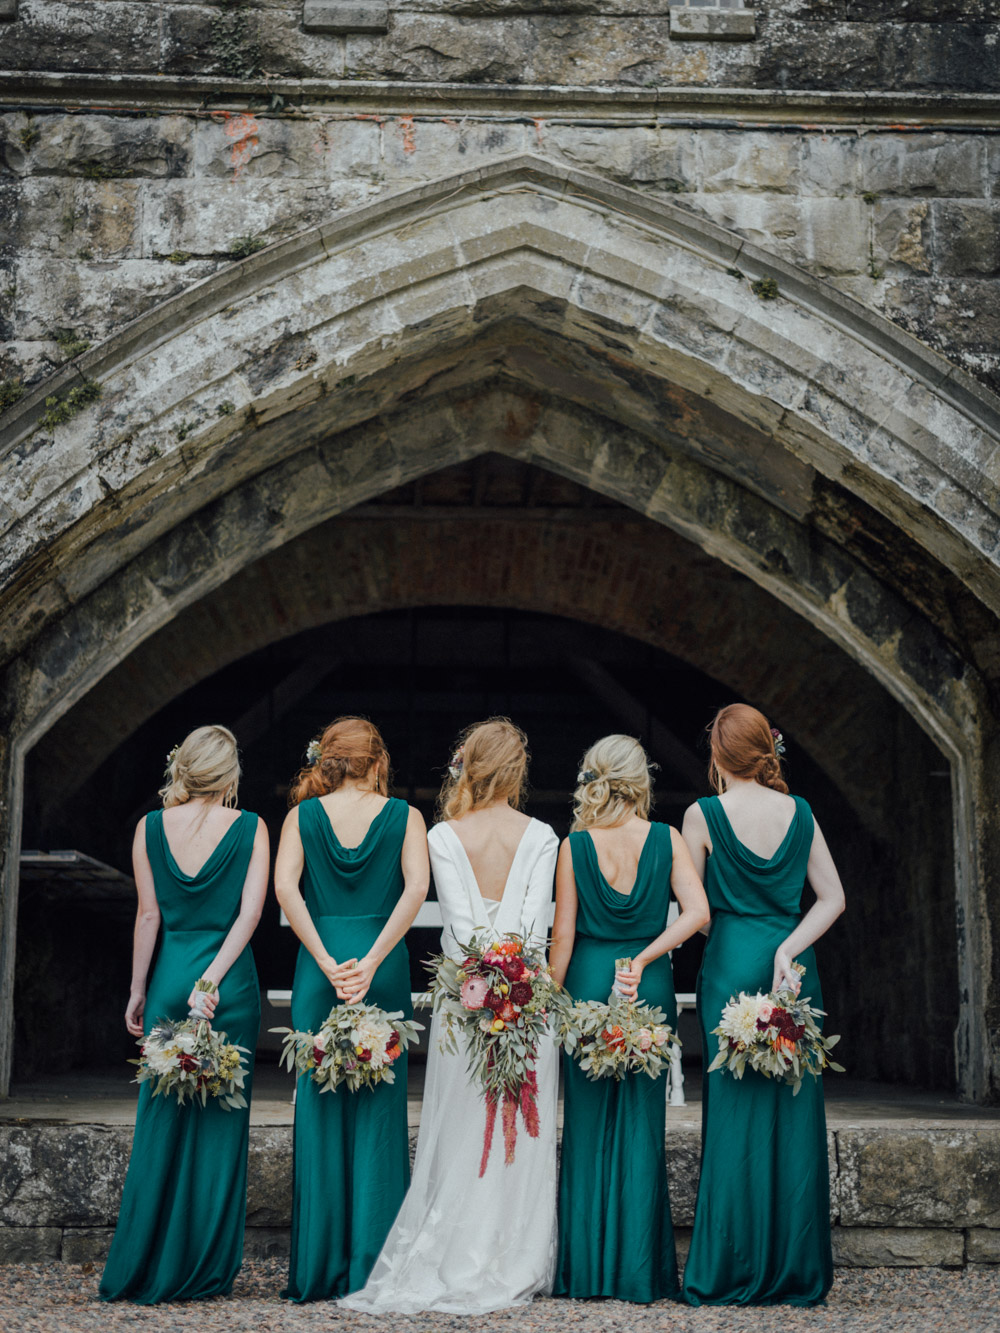 Beautiful bride Joanna wore a wedding dress - actually a skirt and top - by Halfpenny London